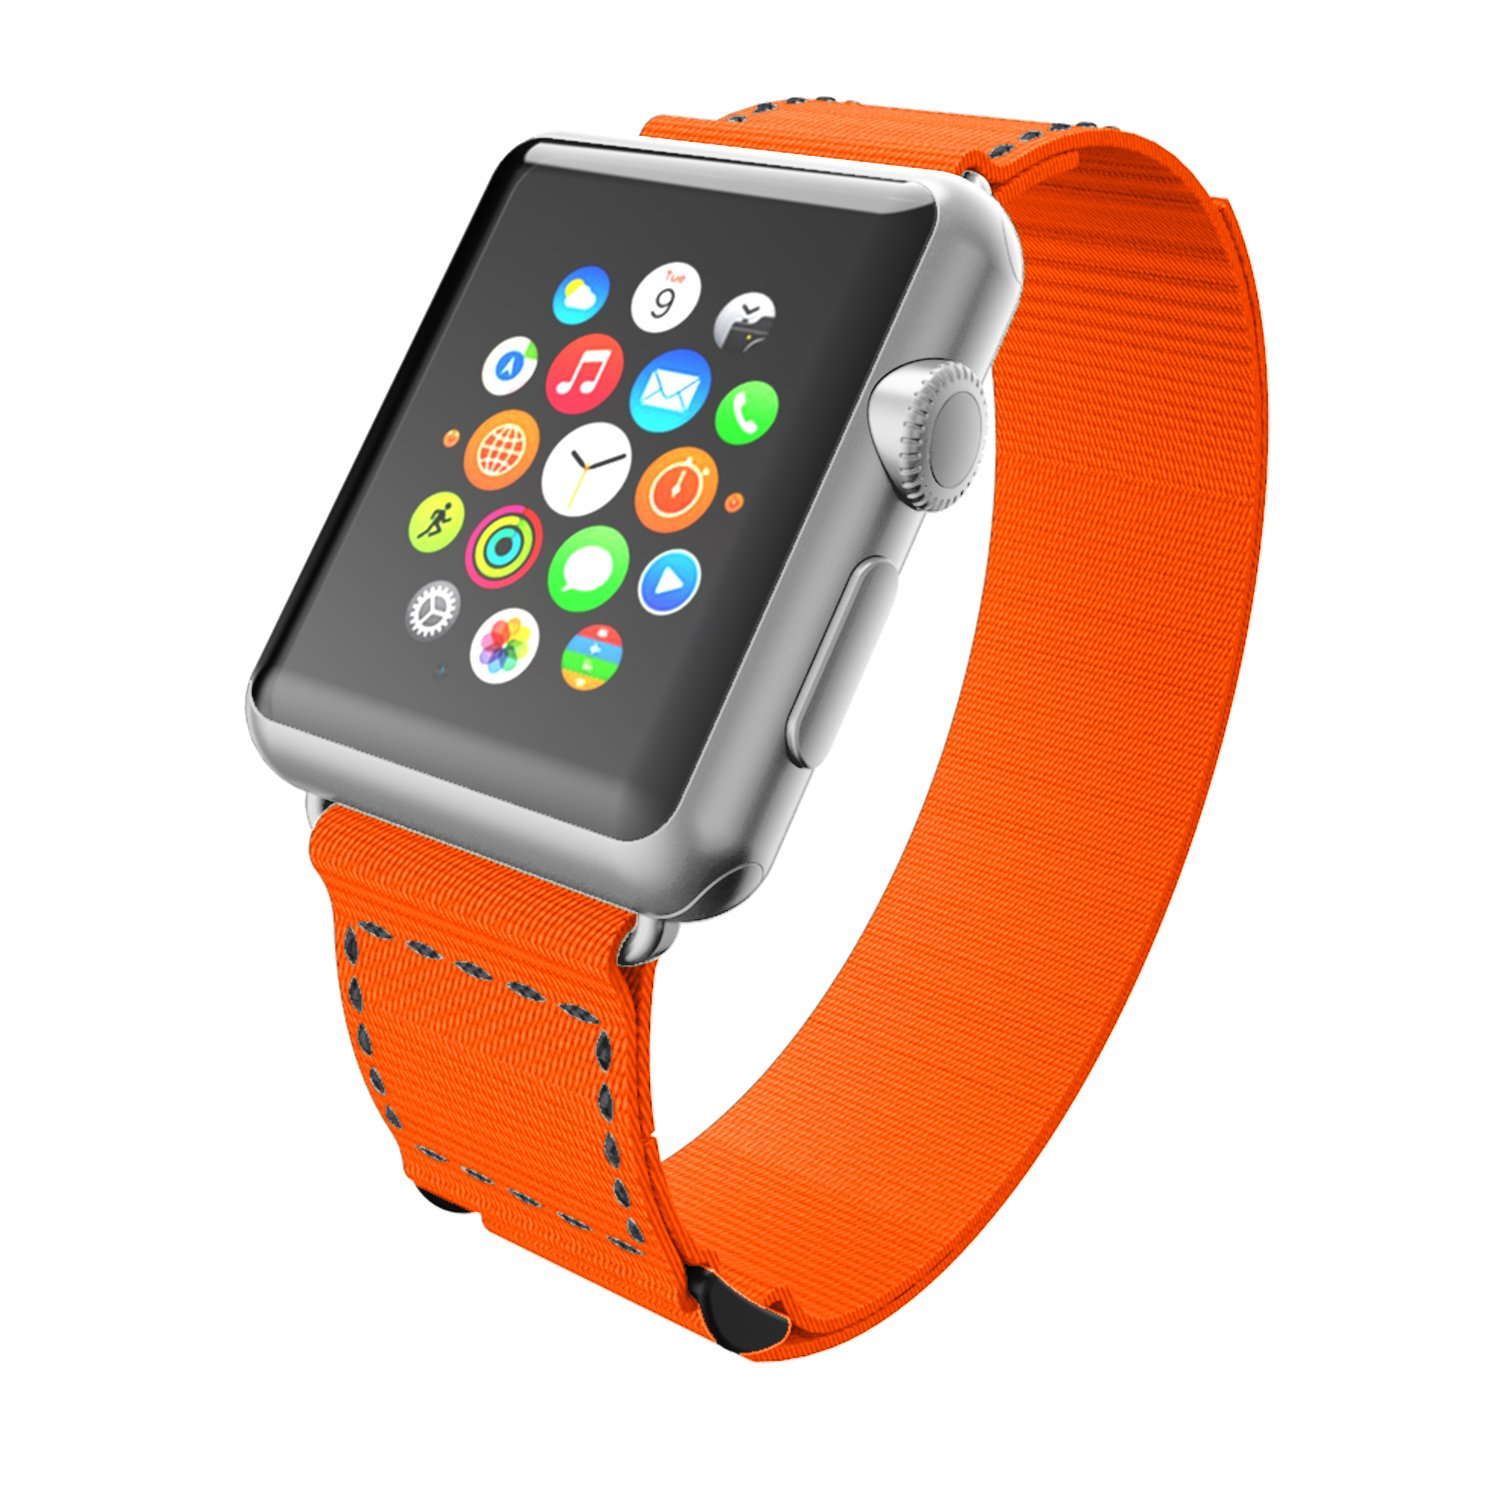 Incipio Smartwatch Replacement Band for Apple Watch 42mm - Orange/Gray Stitching